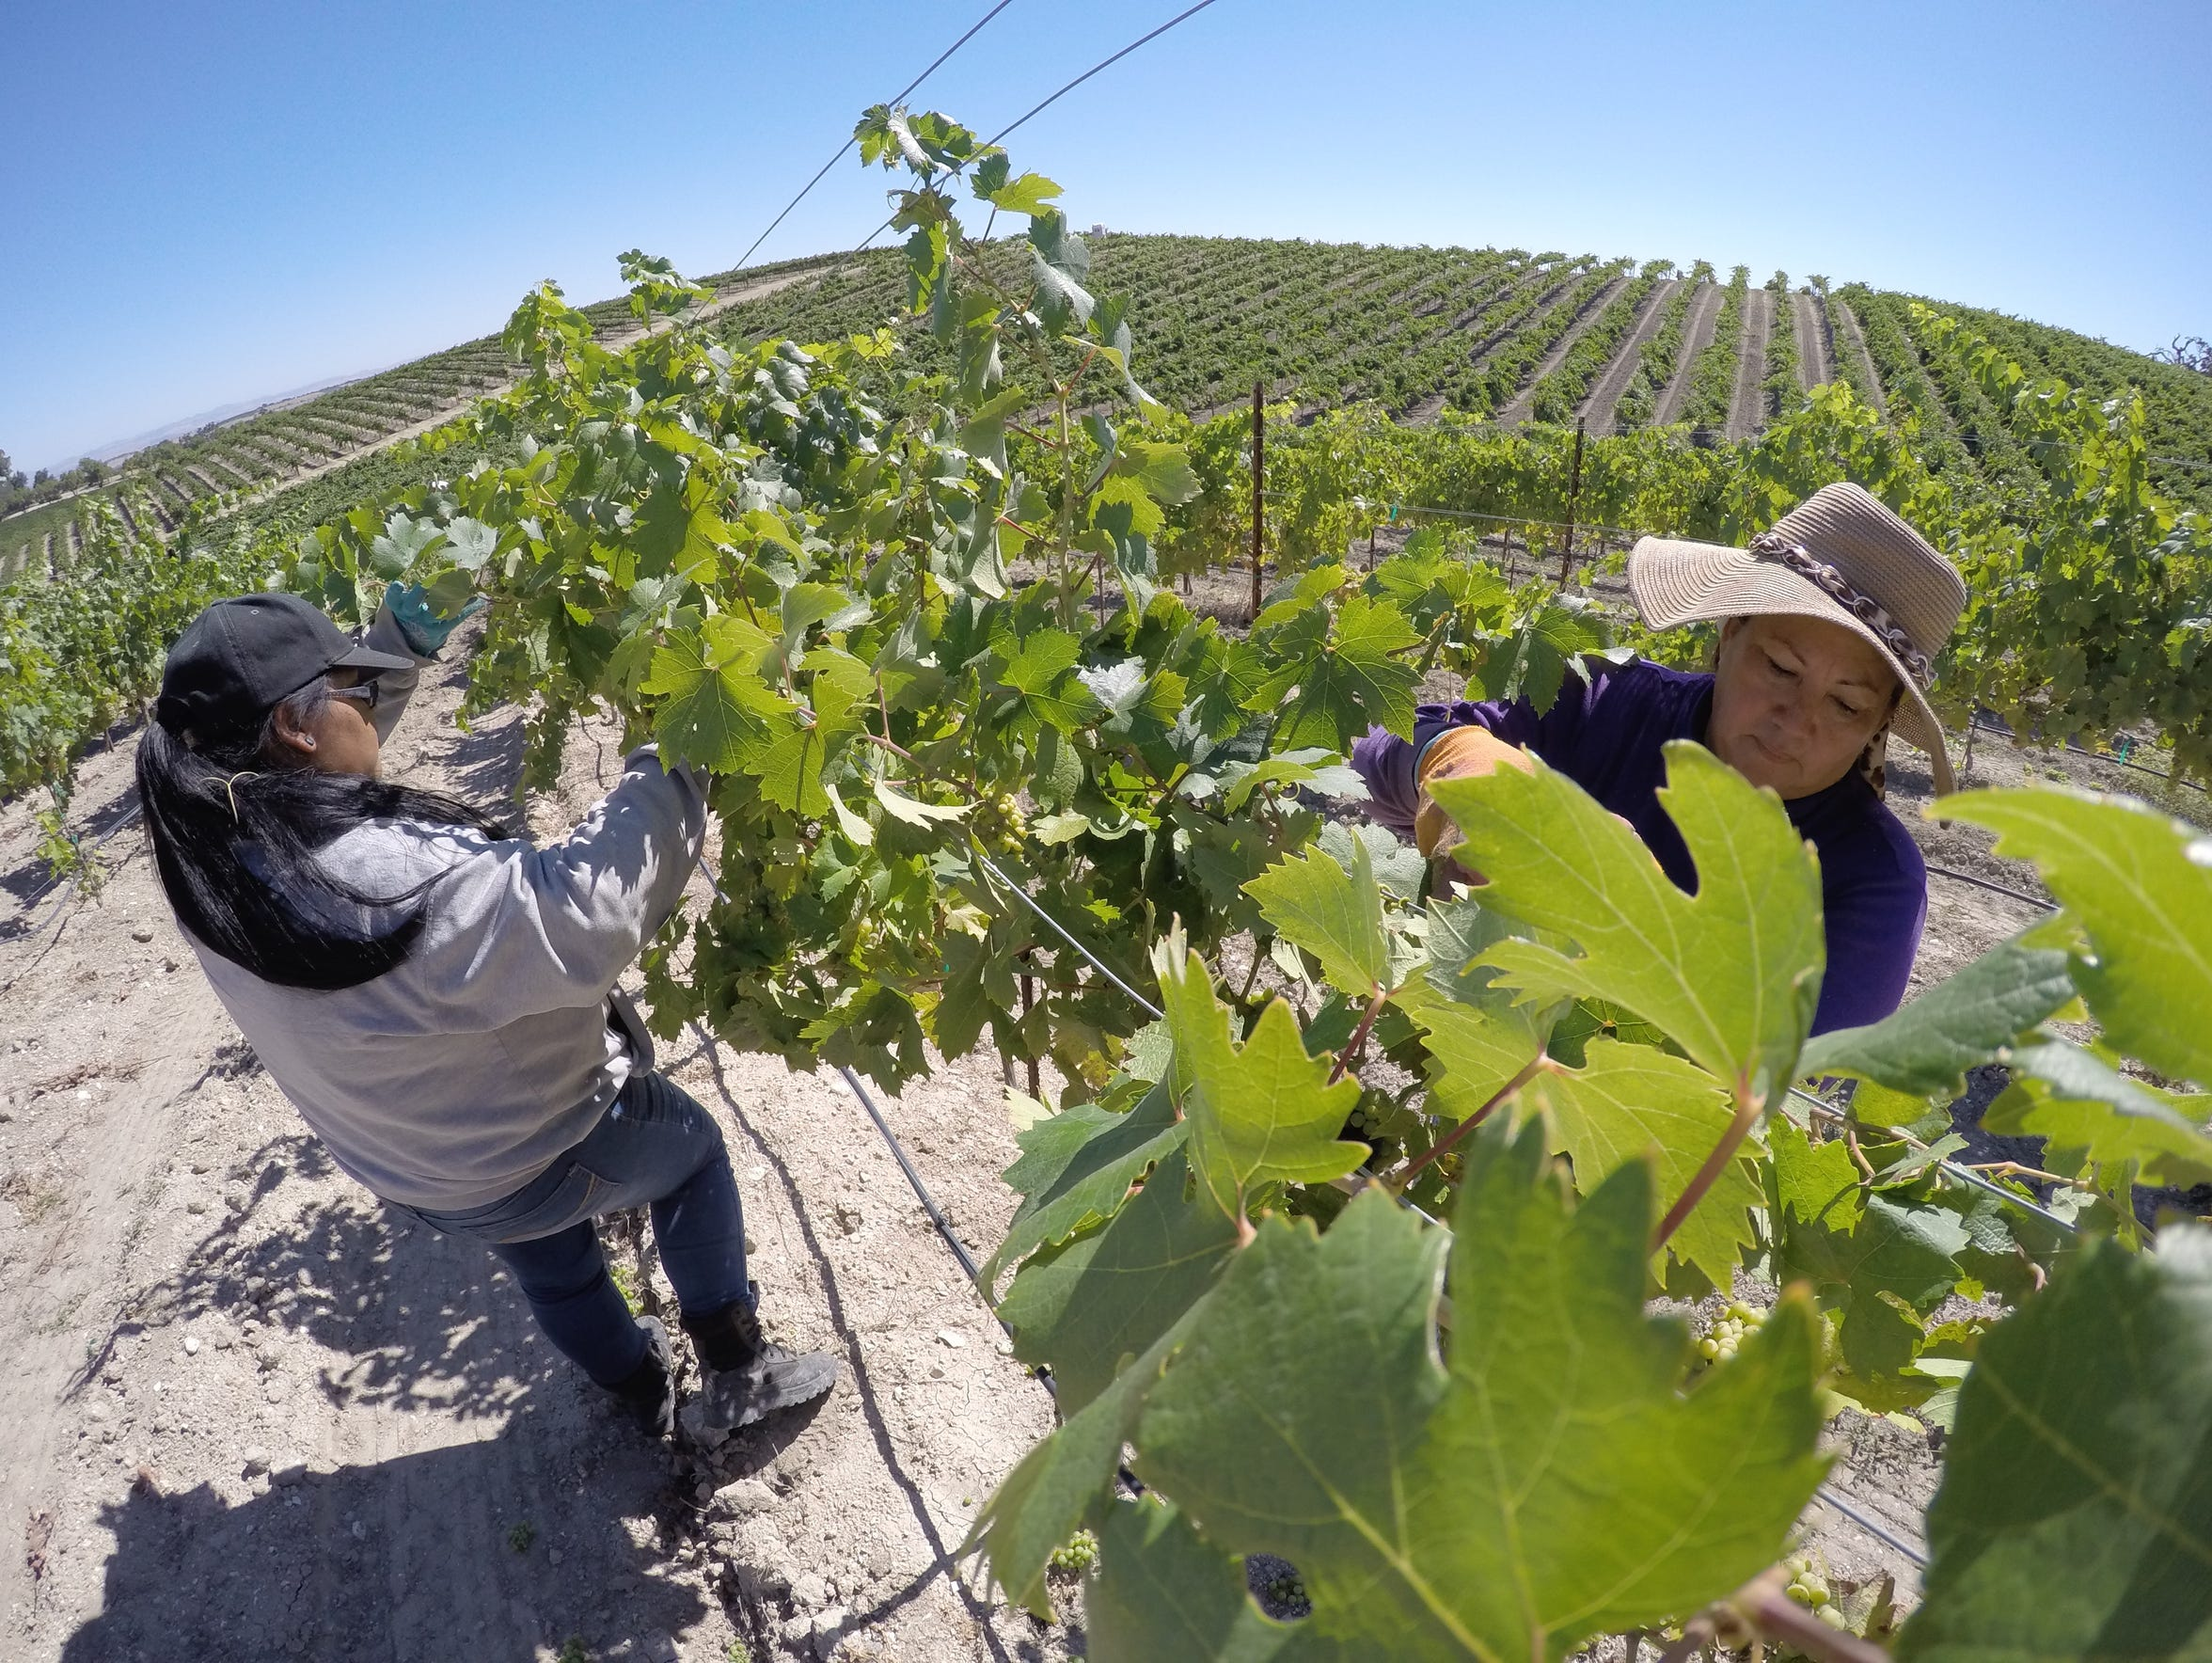 Leticia Espinoza, right, and Maria Ortega prune grapevines